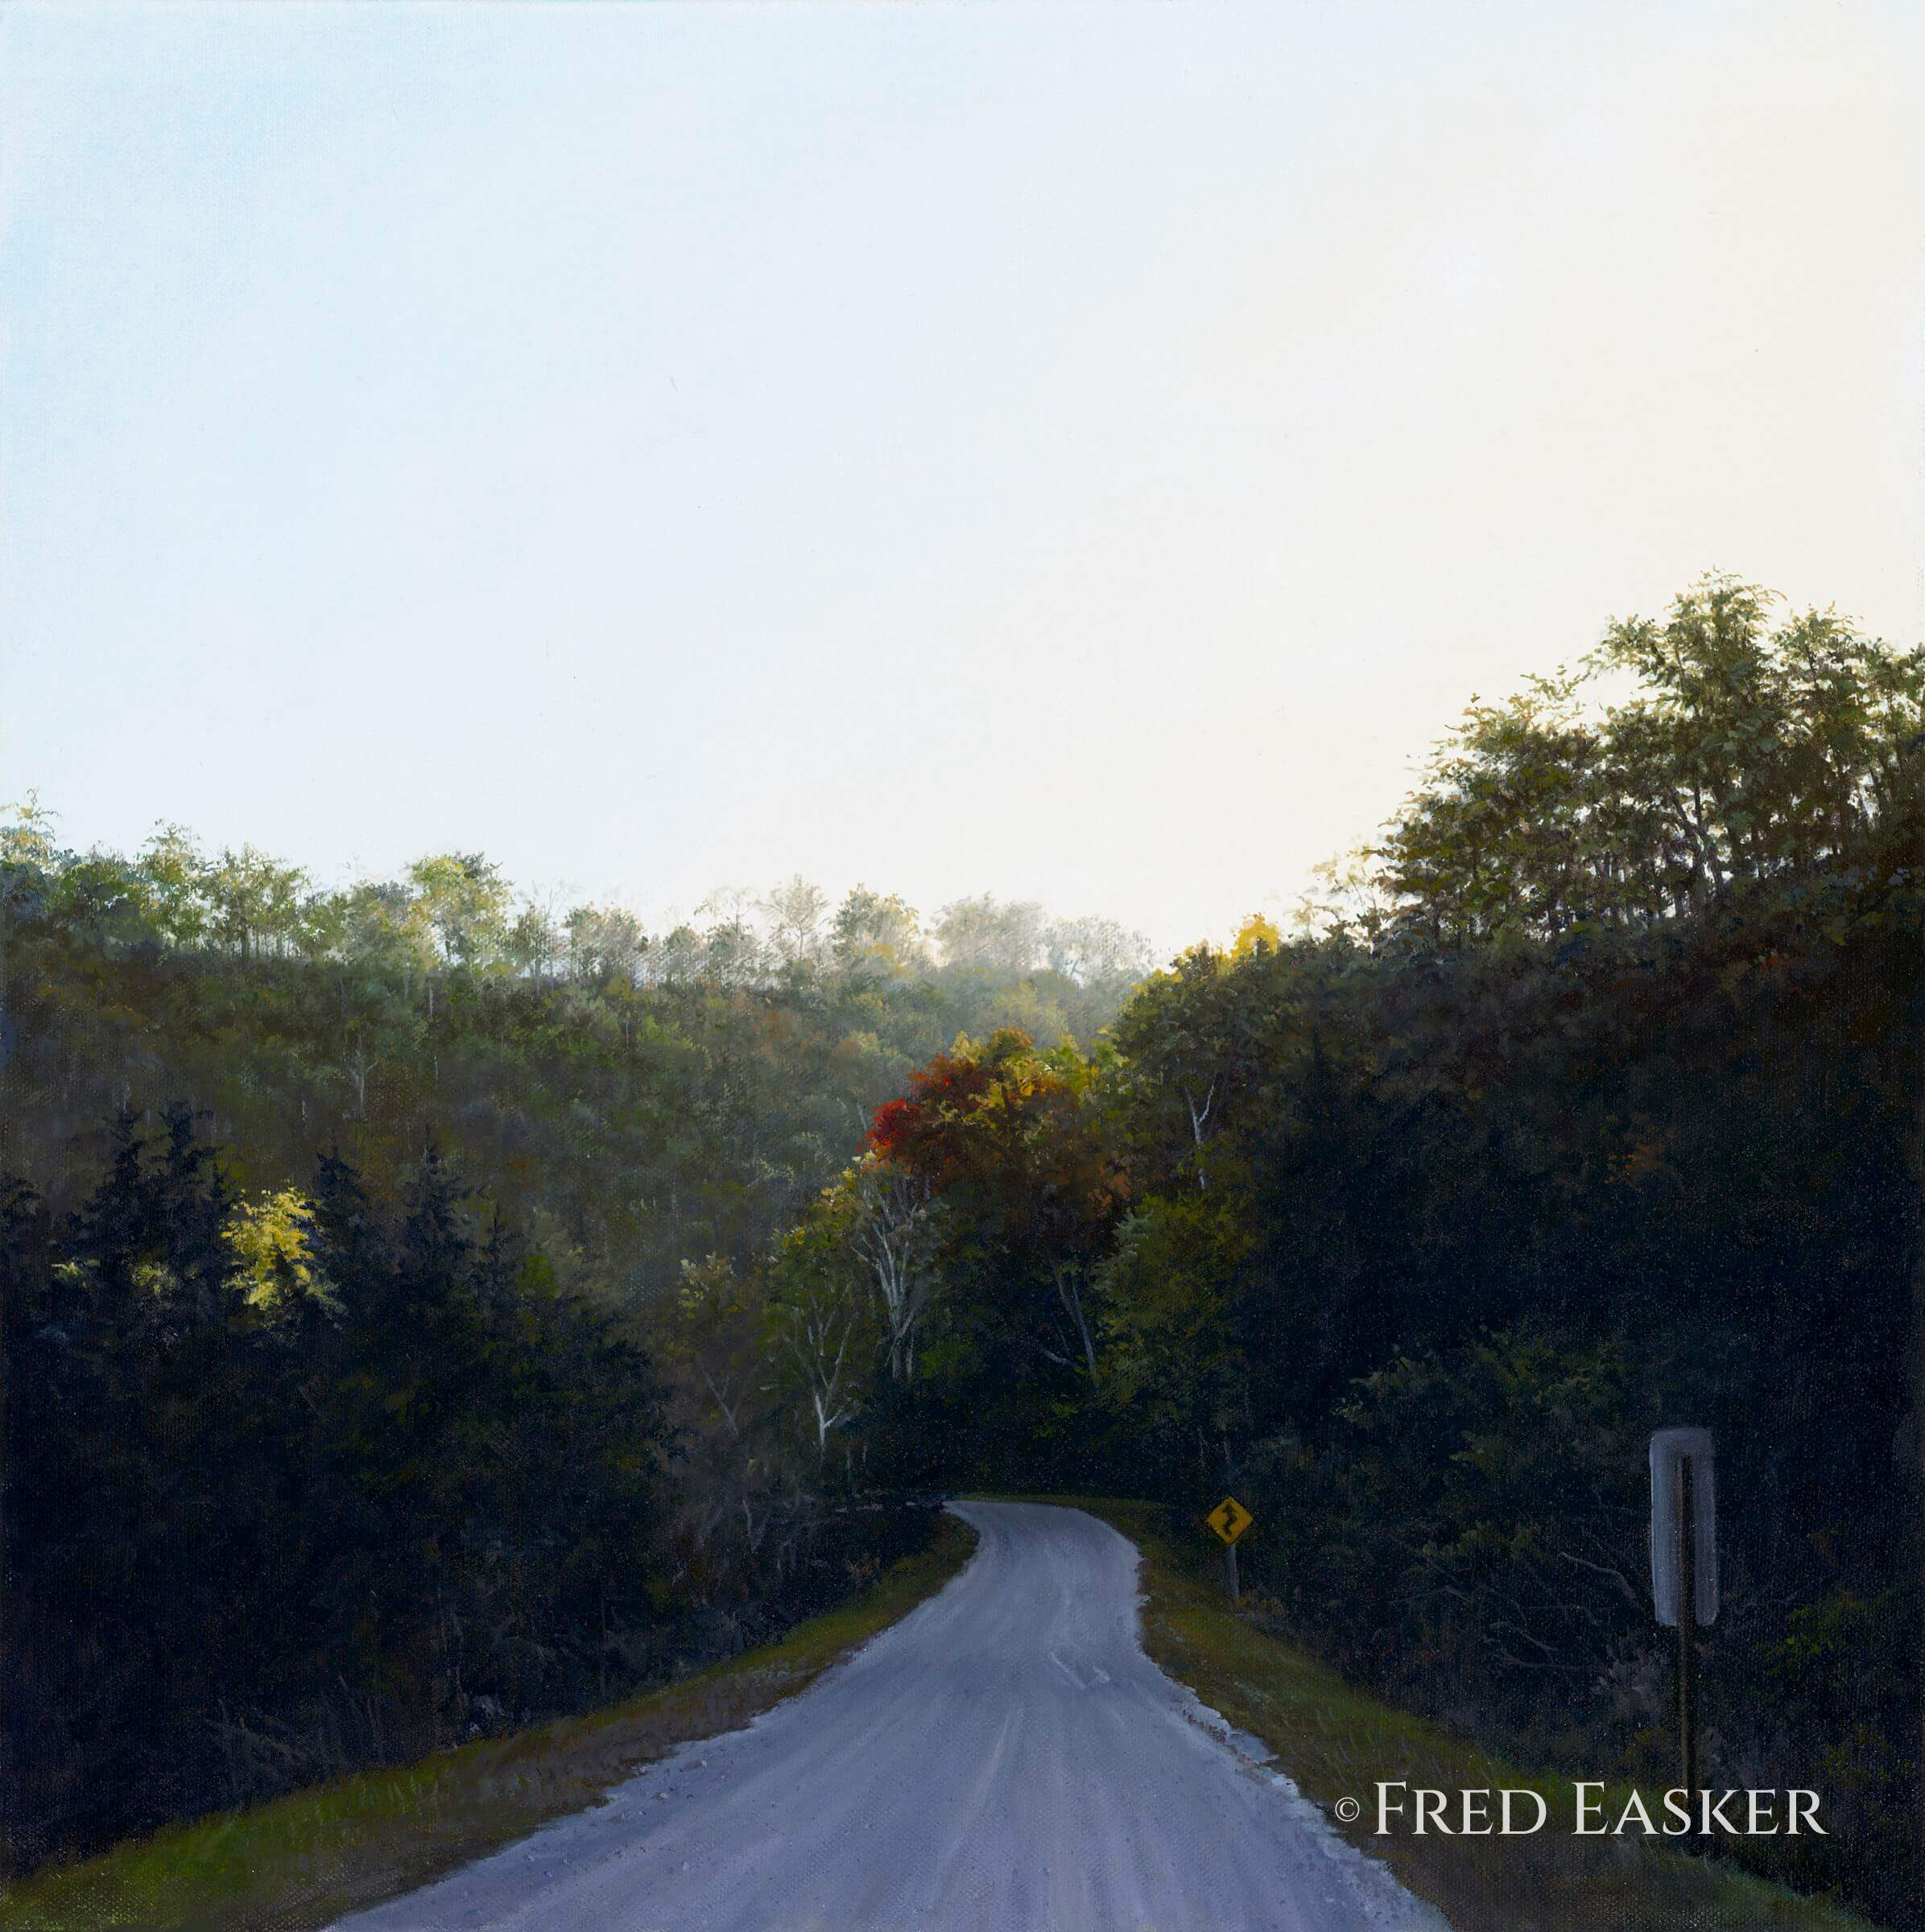 Dark Passage by Fred Easker